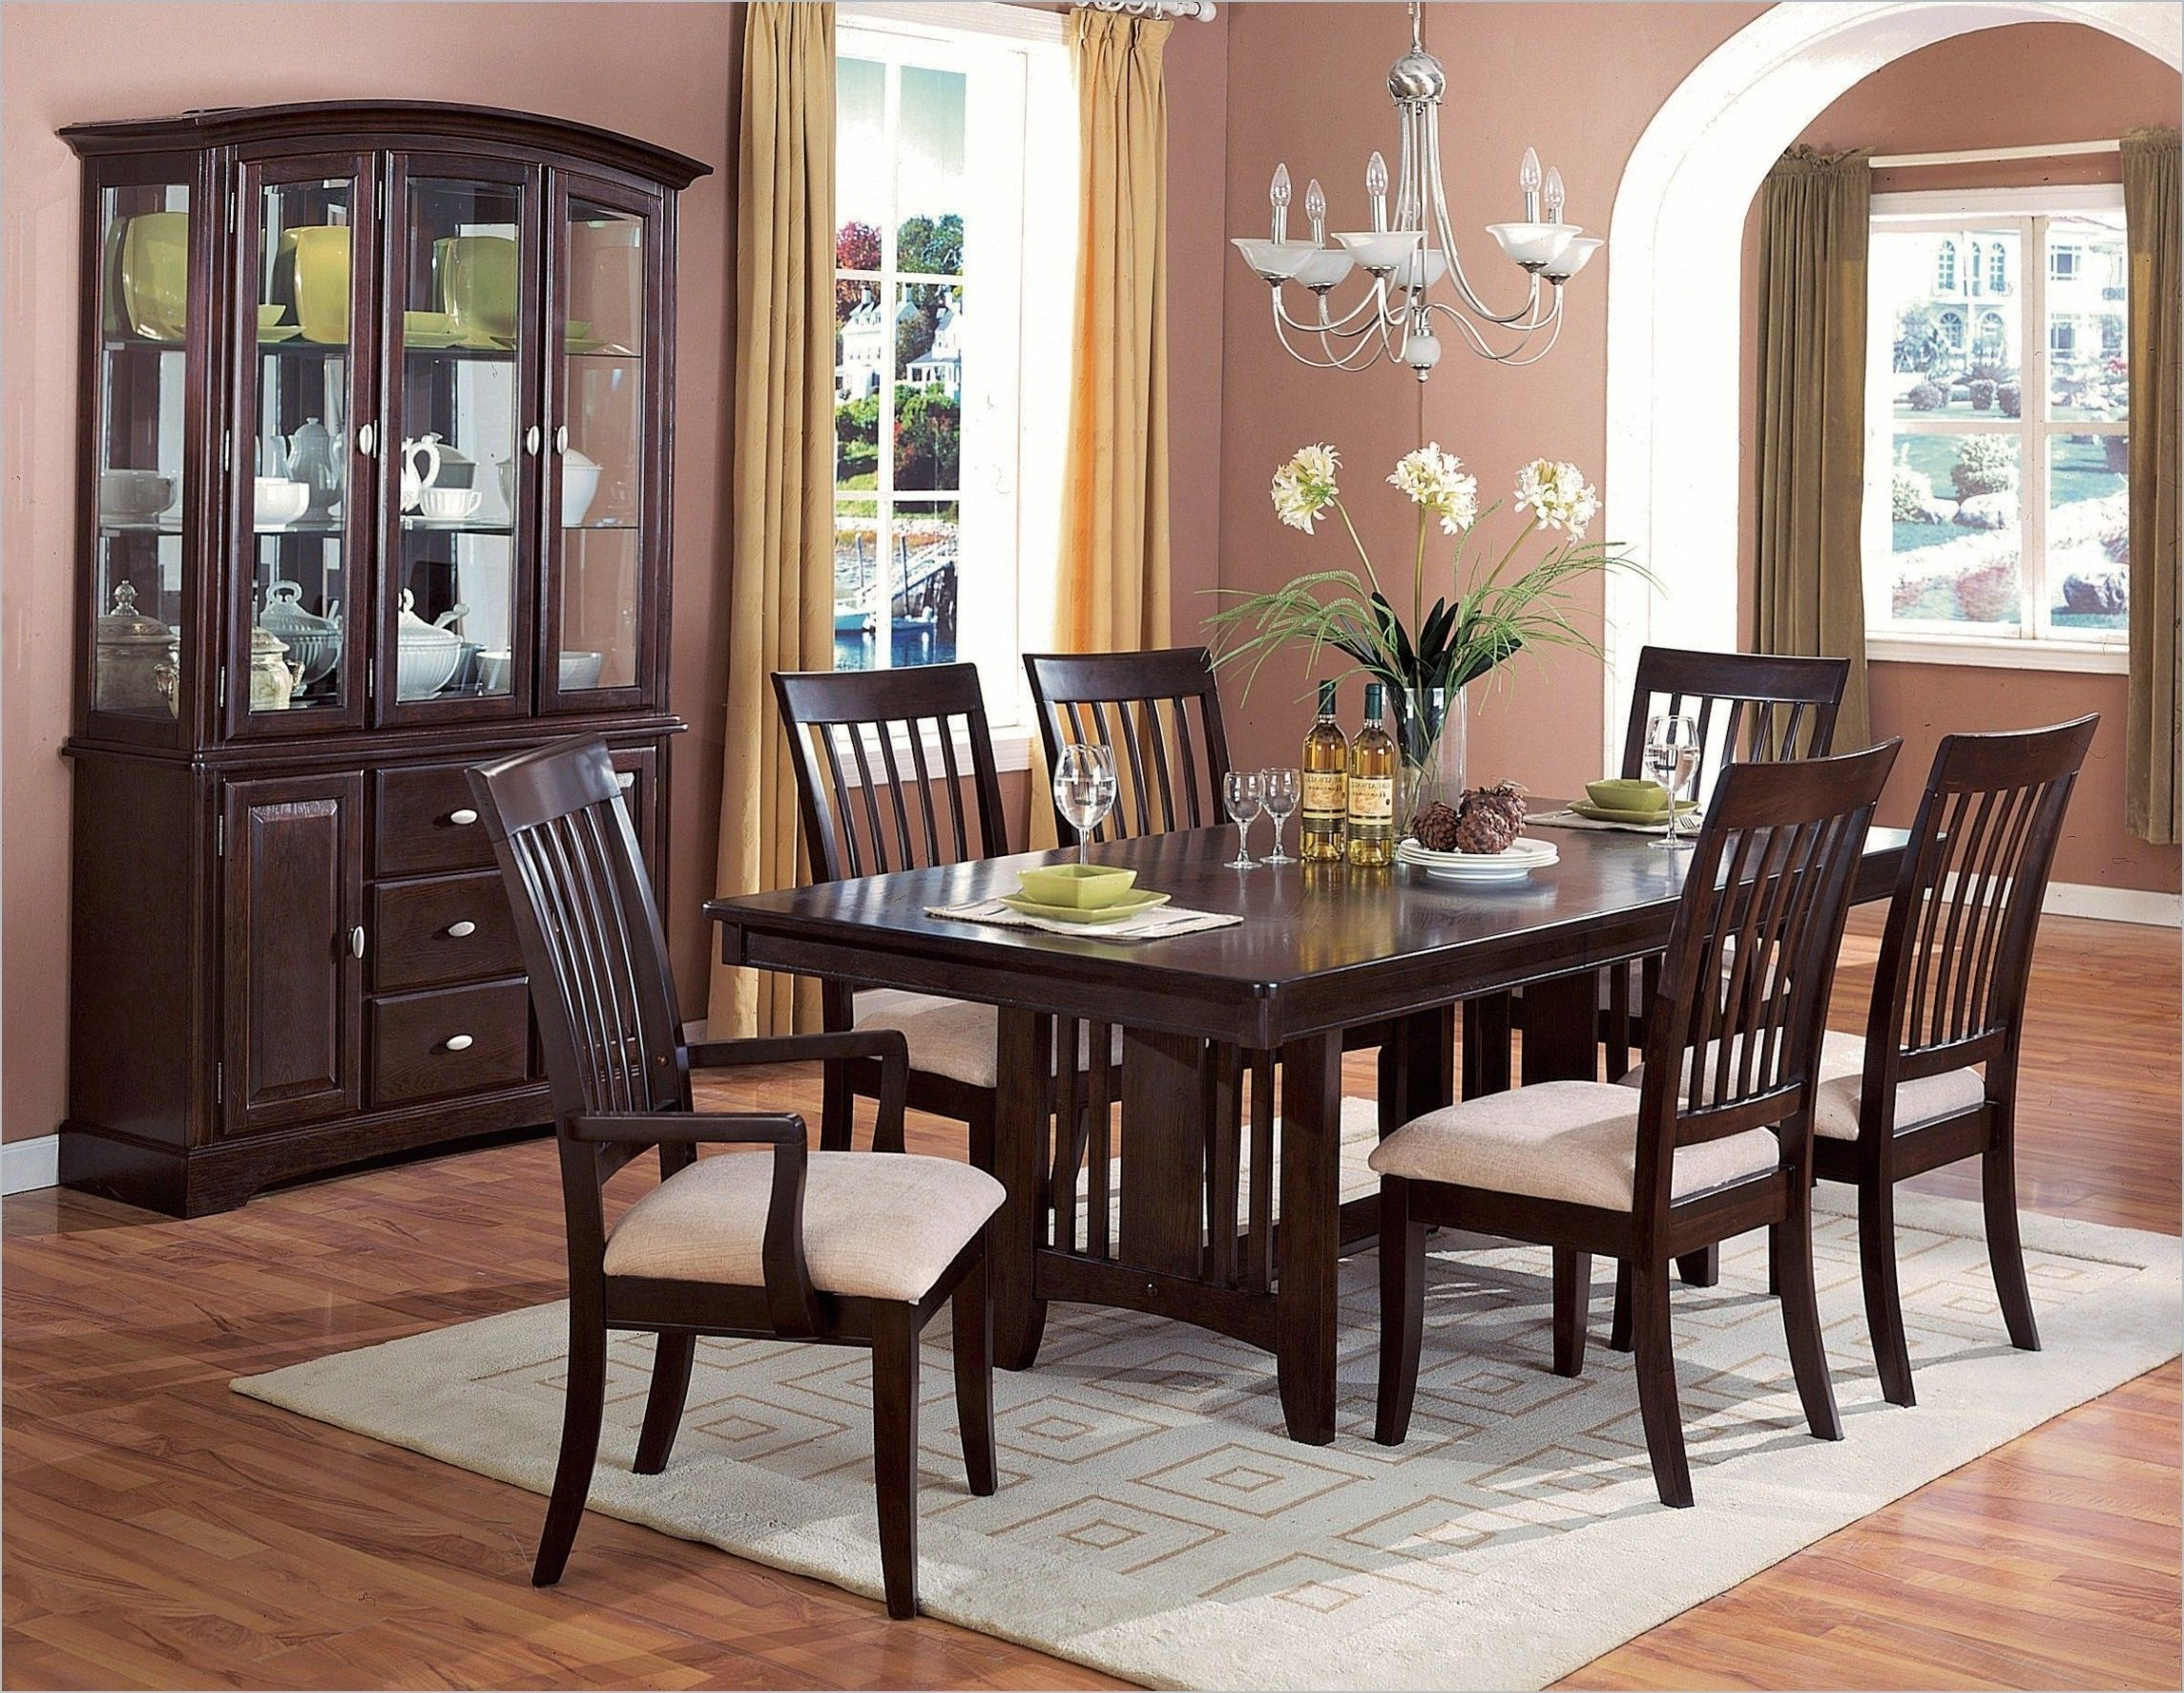 Top 10 Dining Room Decorating Ideas On A Budget With Images